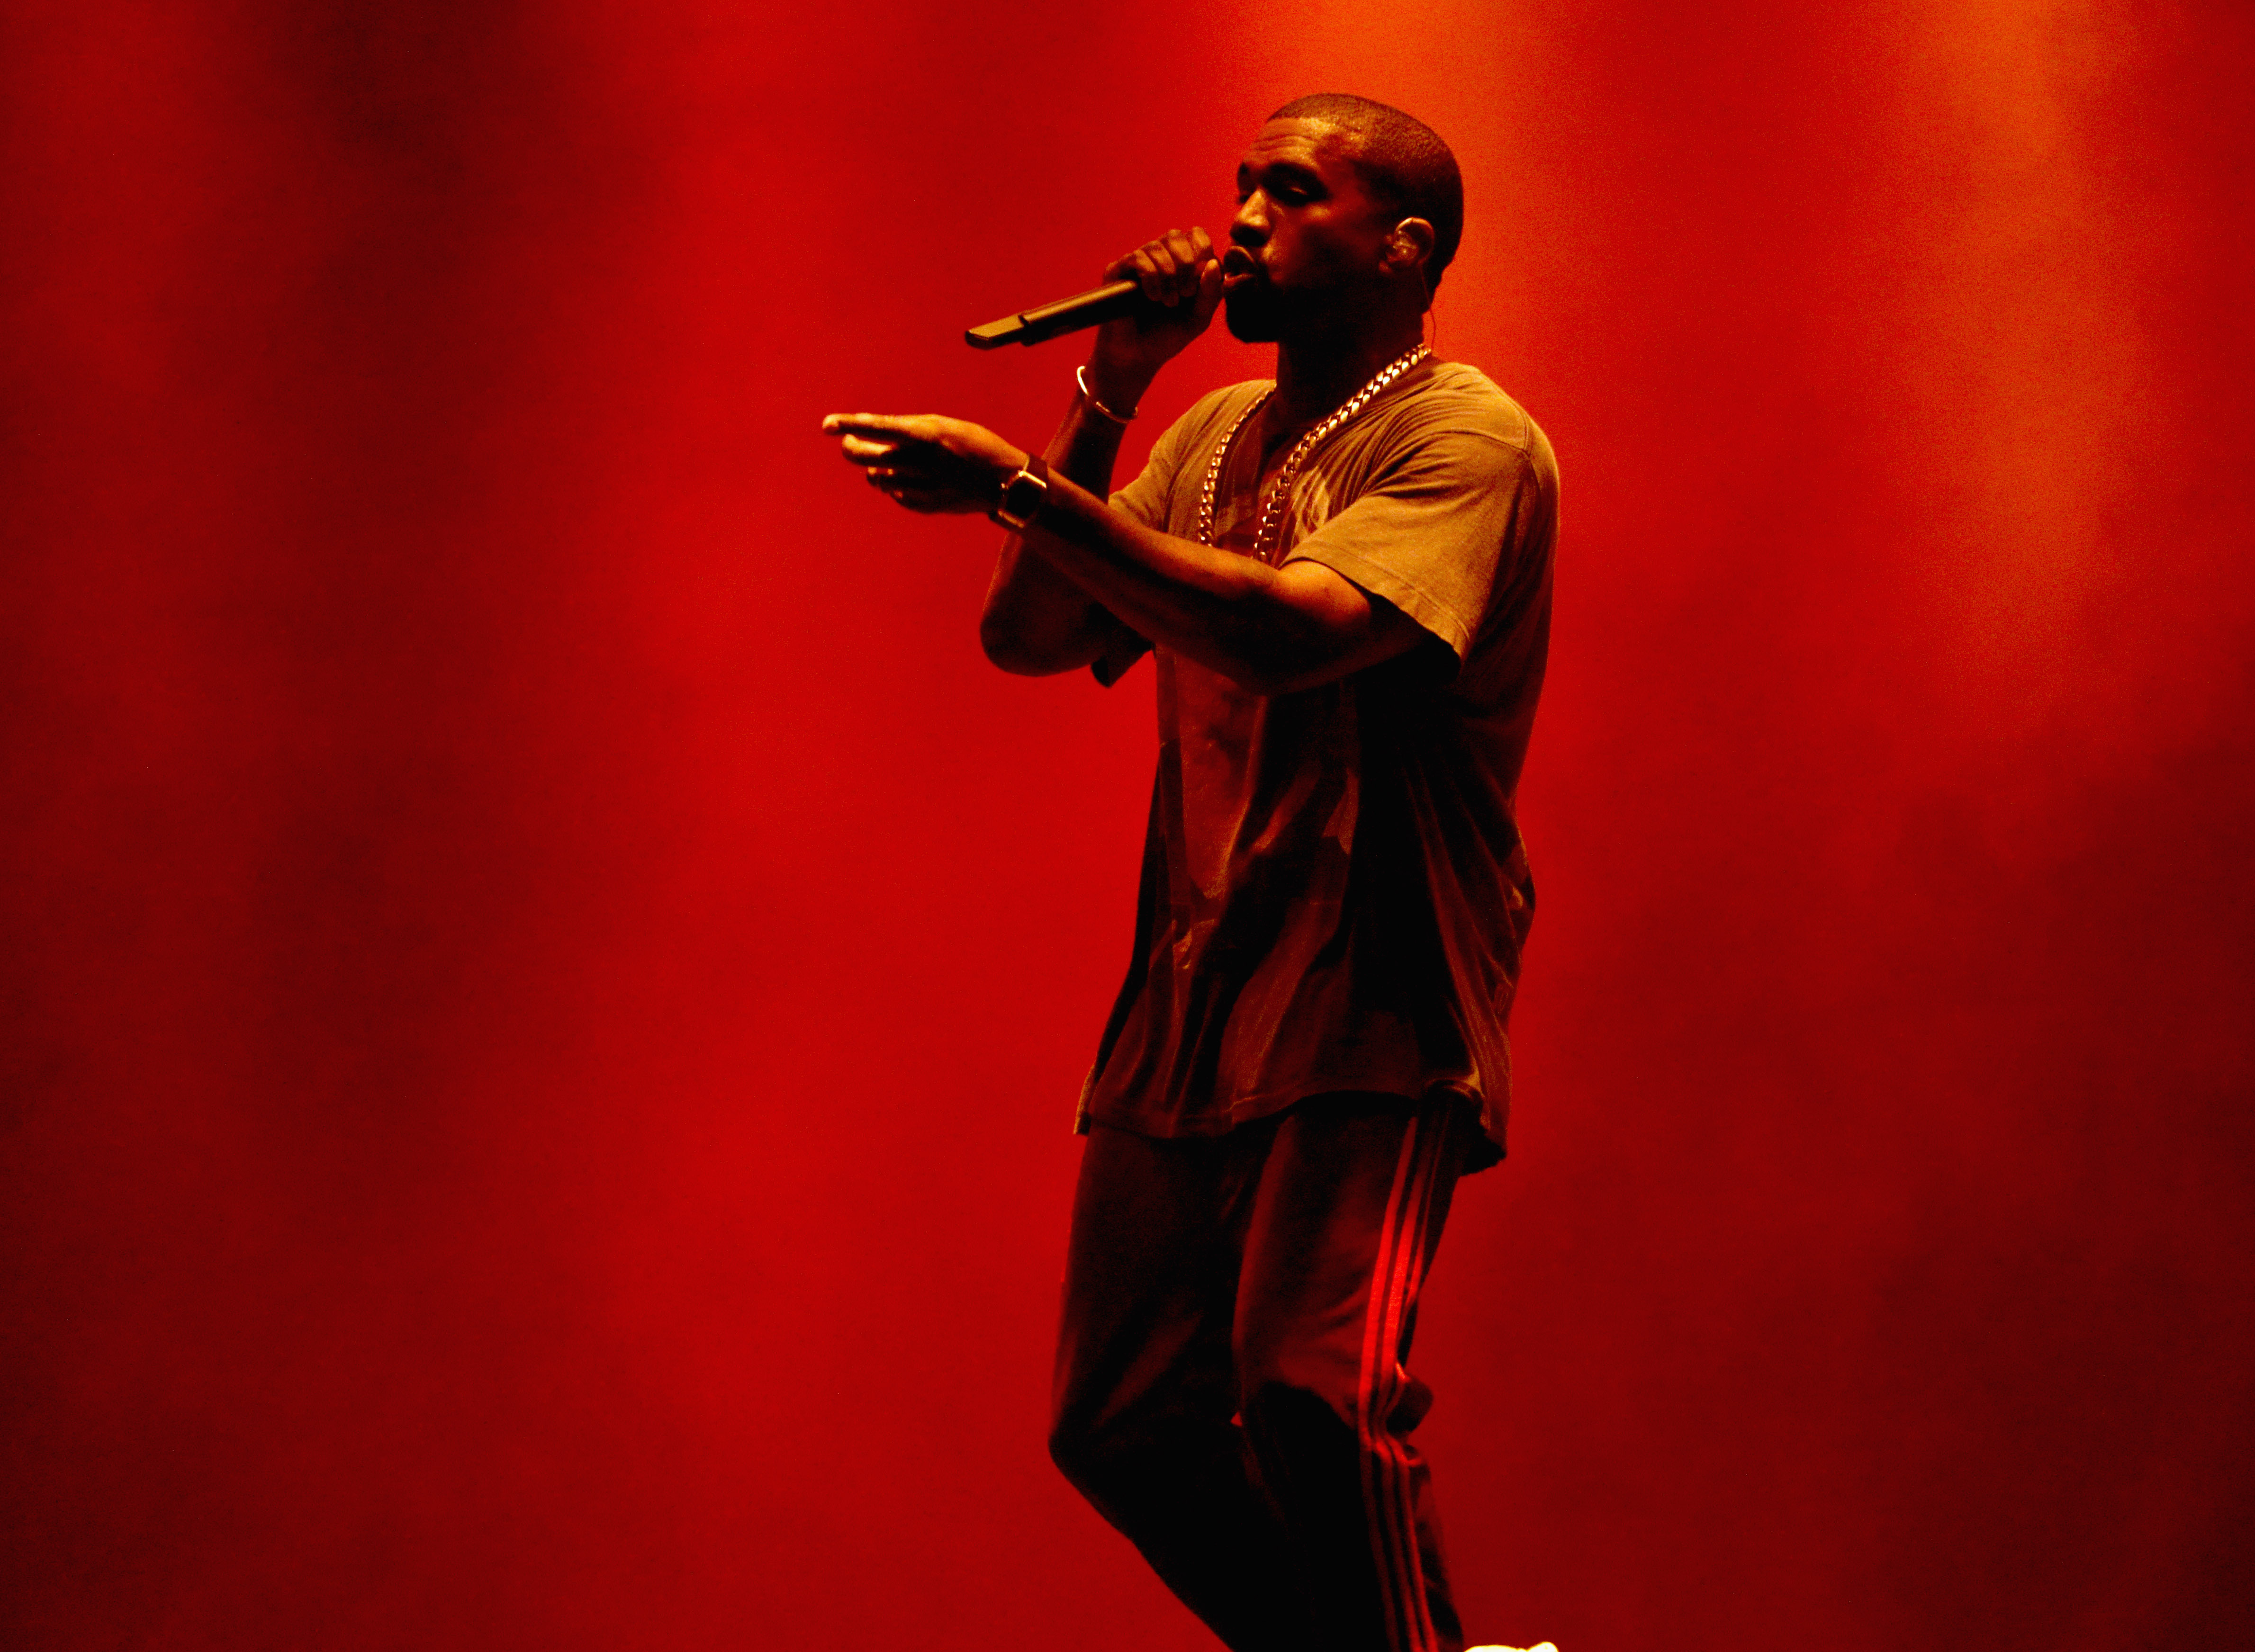 Kanye West performs onstage during The Meadows Music & Arts Festival Day 2 on Oct. 2, 2016 in Queens, New York.